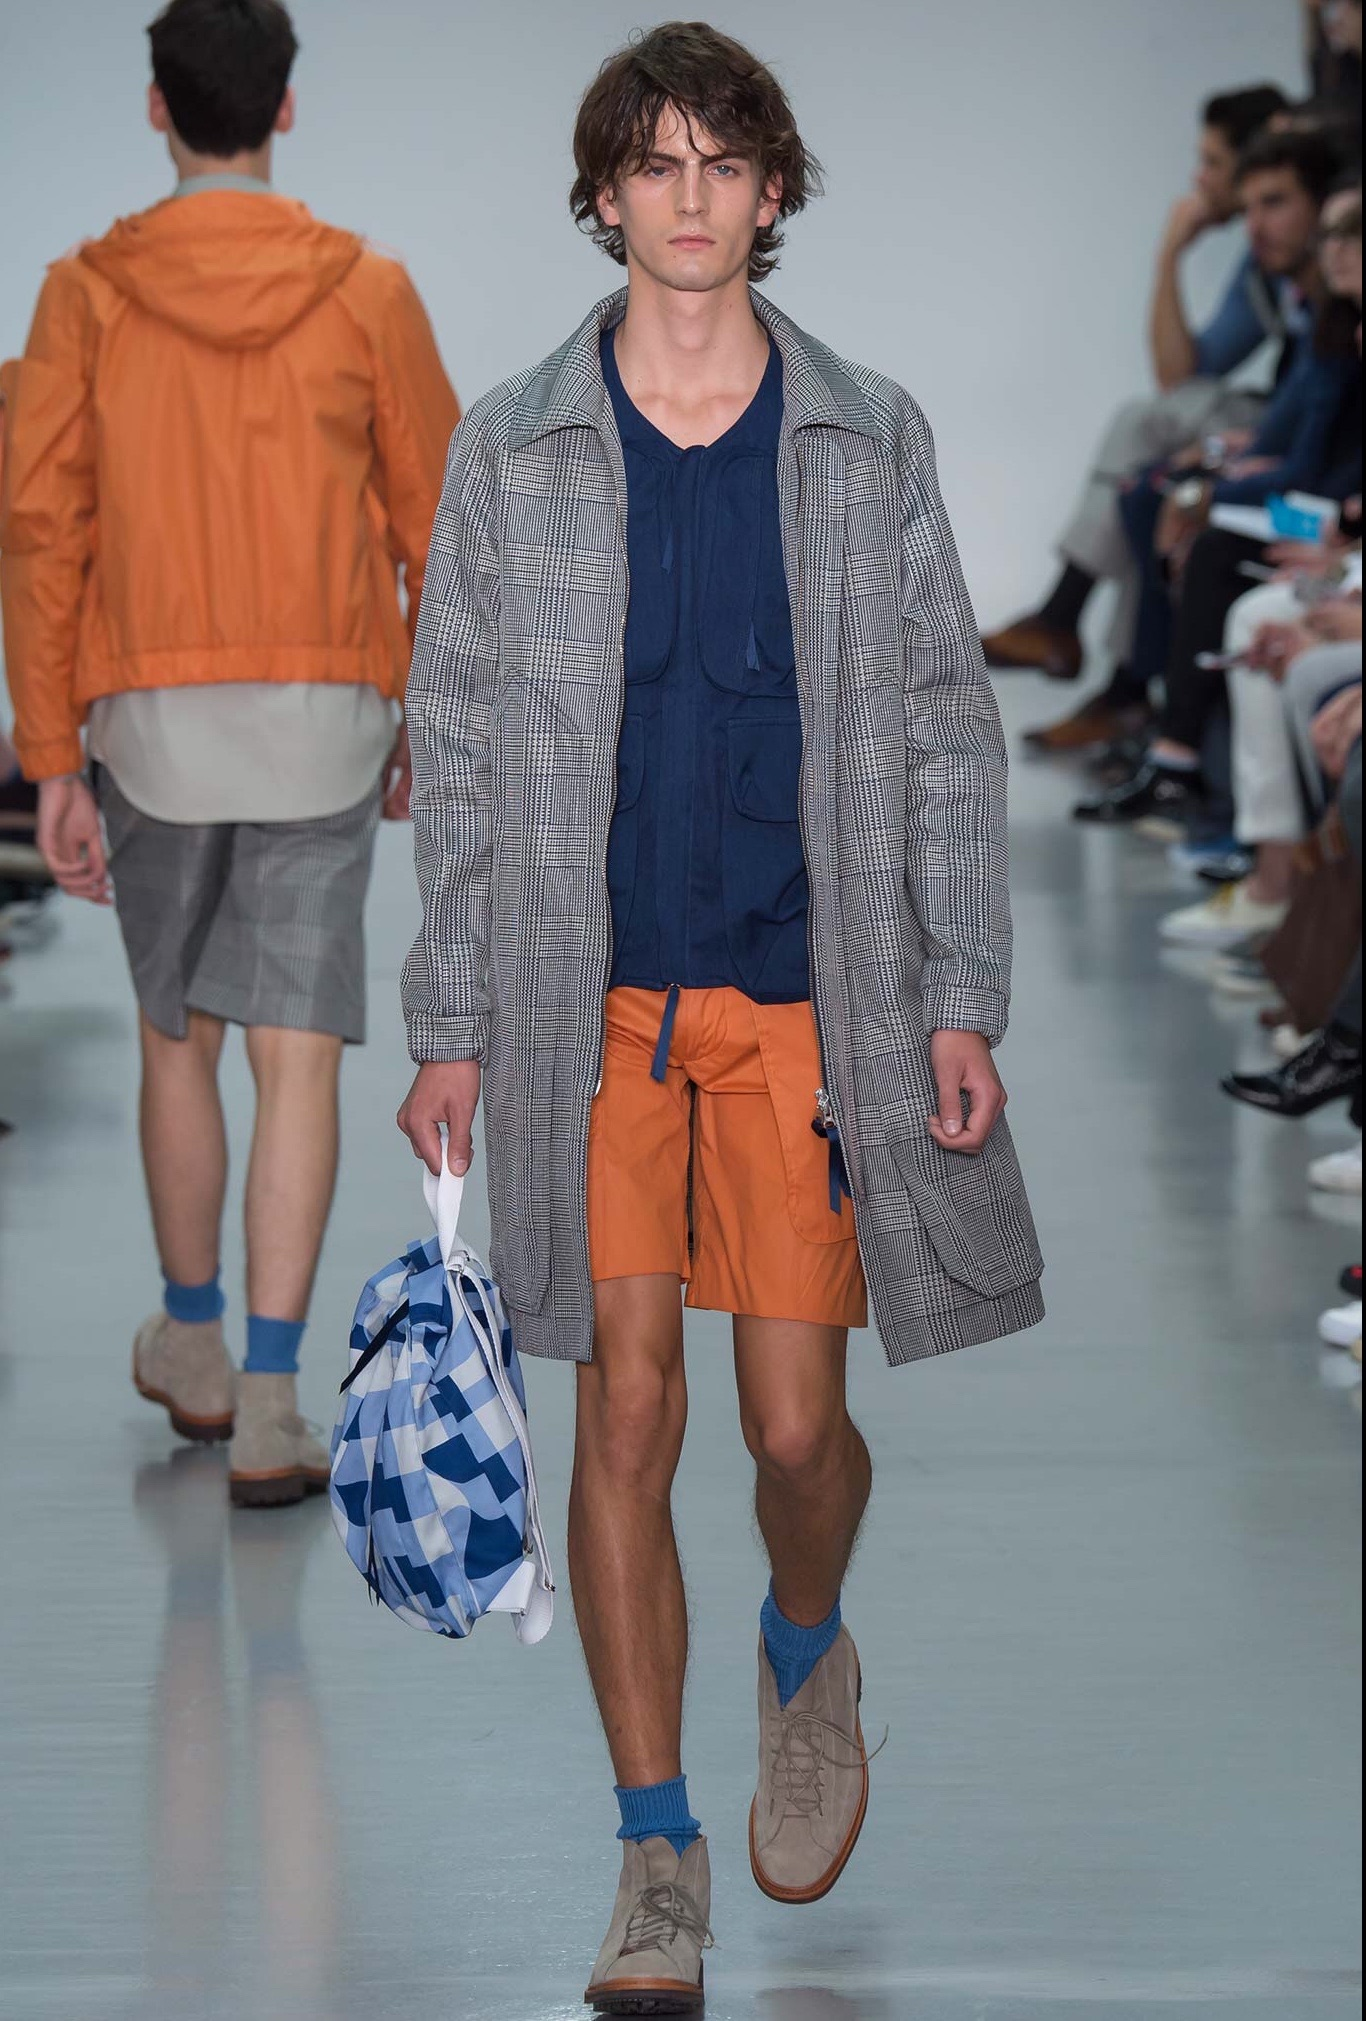 London Collections: Men Highlights – Spring/Summer 2016